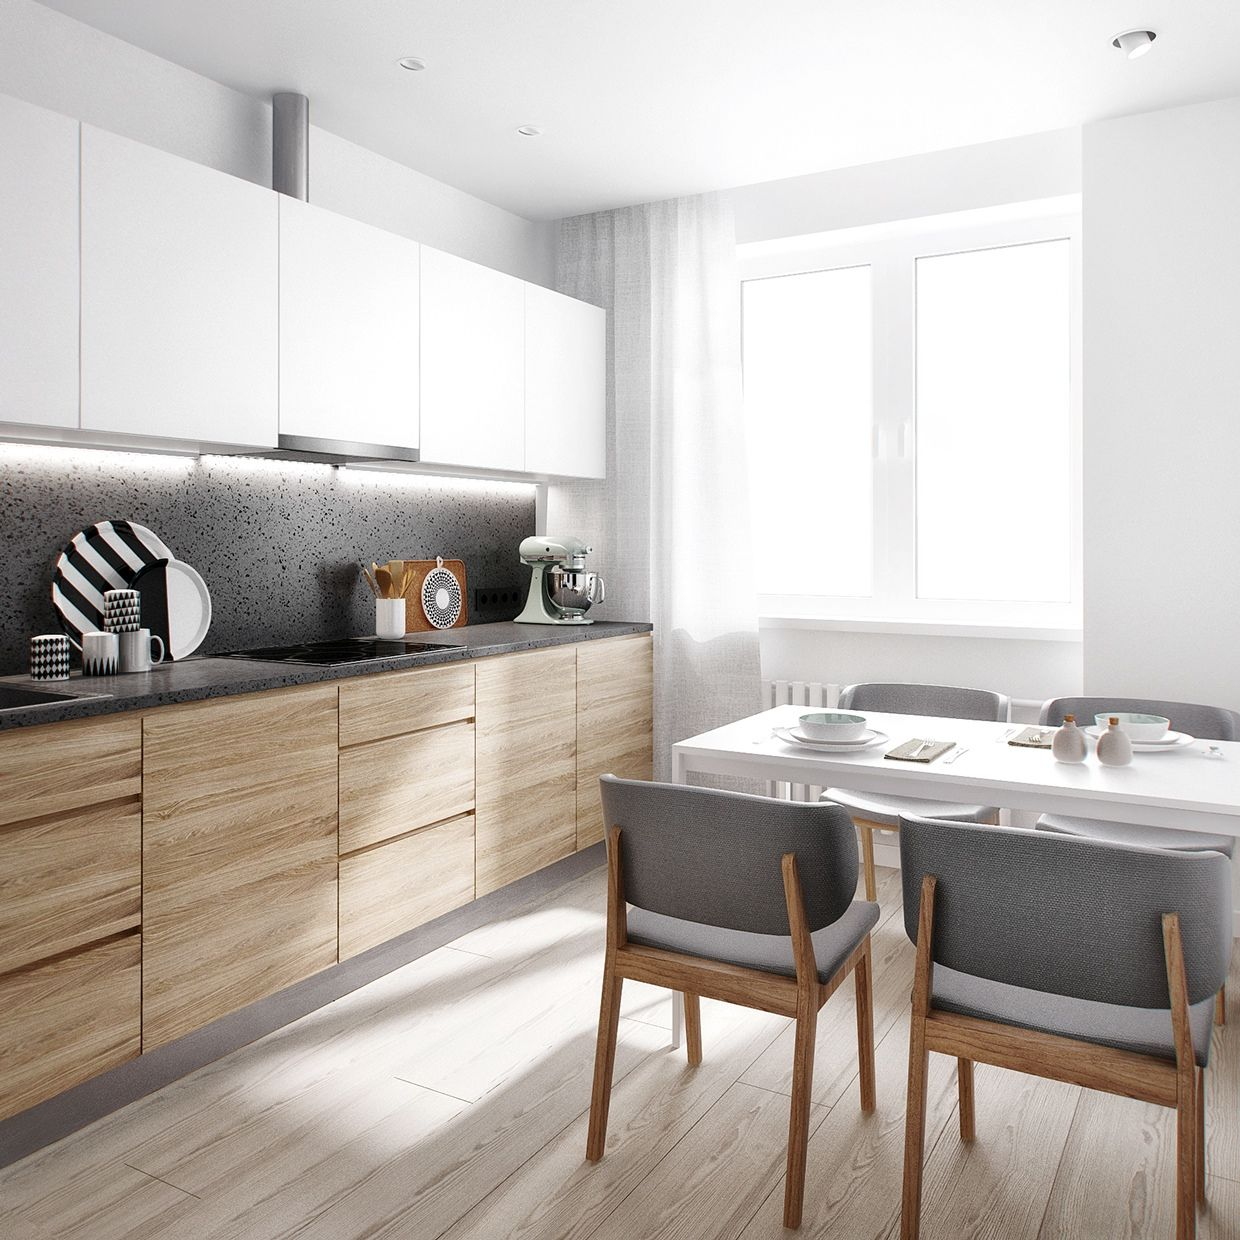 Apartment Kitchen: Four Apartments From St. Petersburg's Int2 Architecture